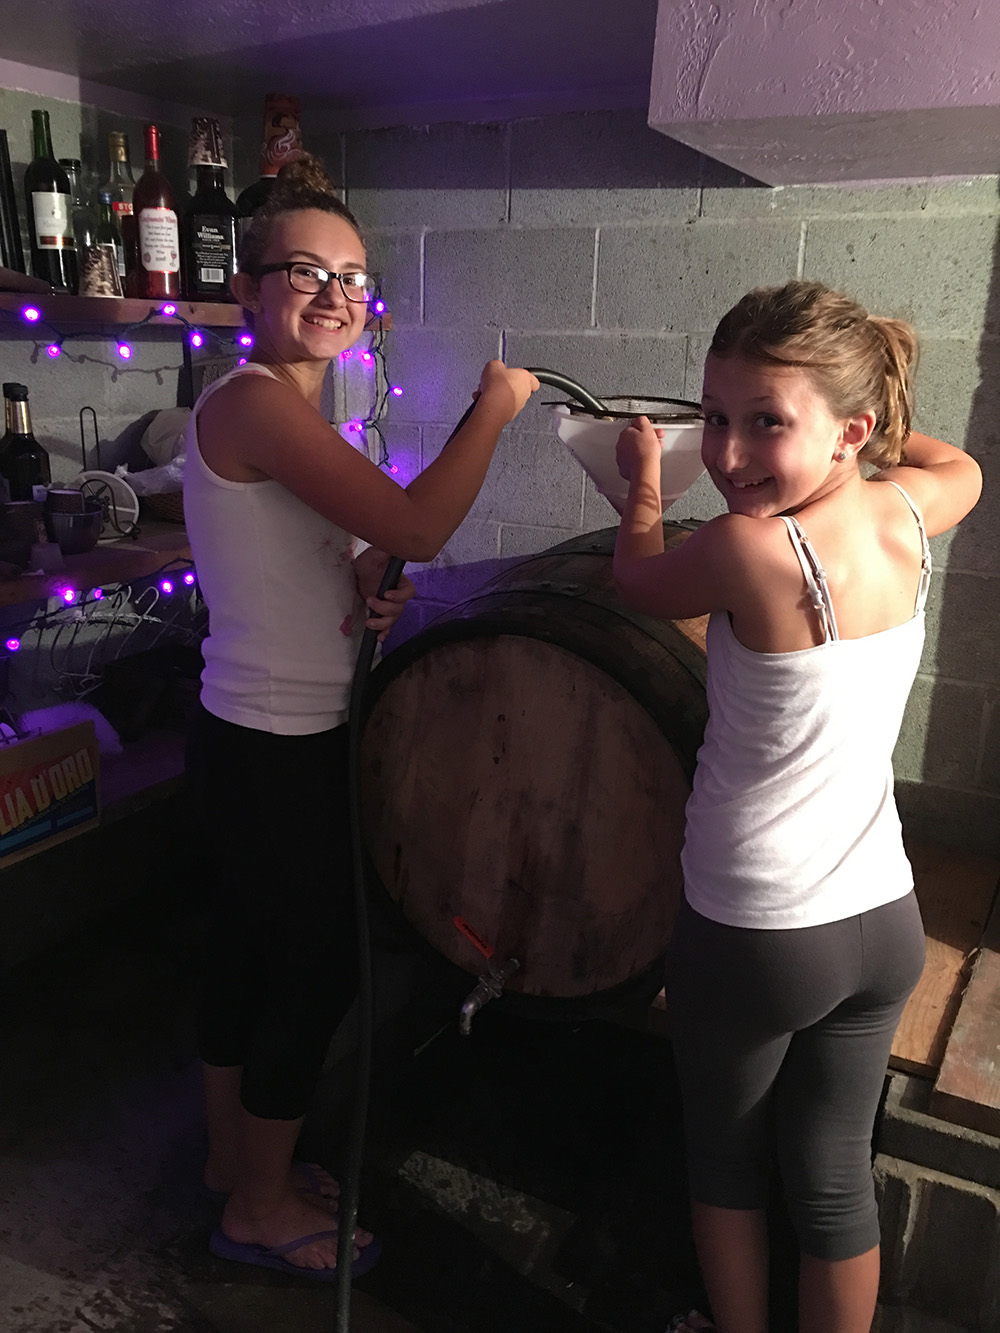 Two members of the Mancini family help siphon grape juice into a barrel for aging. Courtesy of the Mancini family.